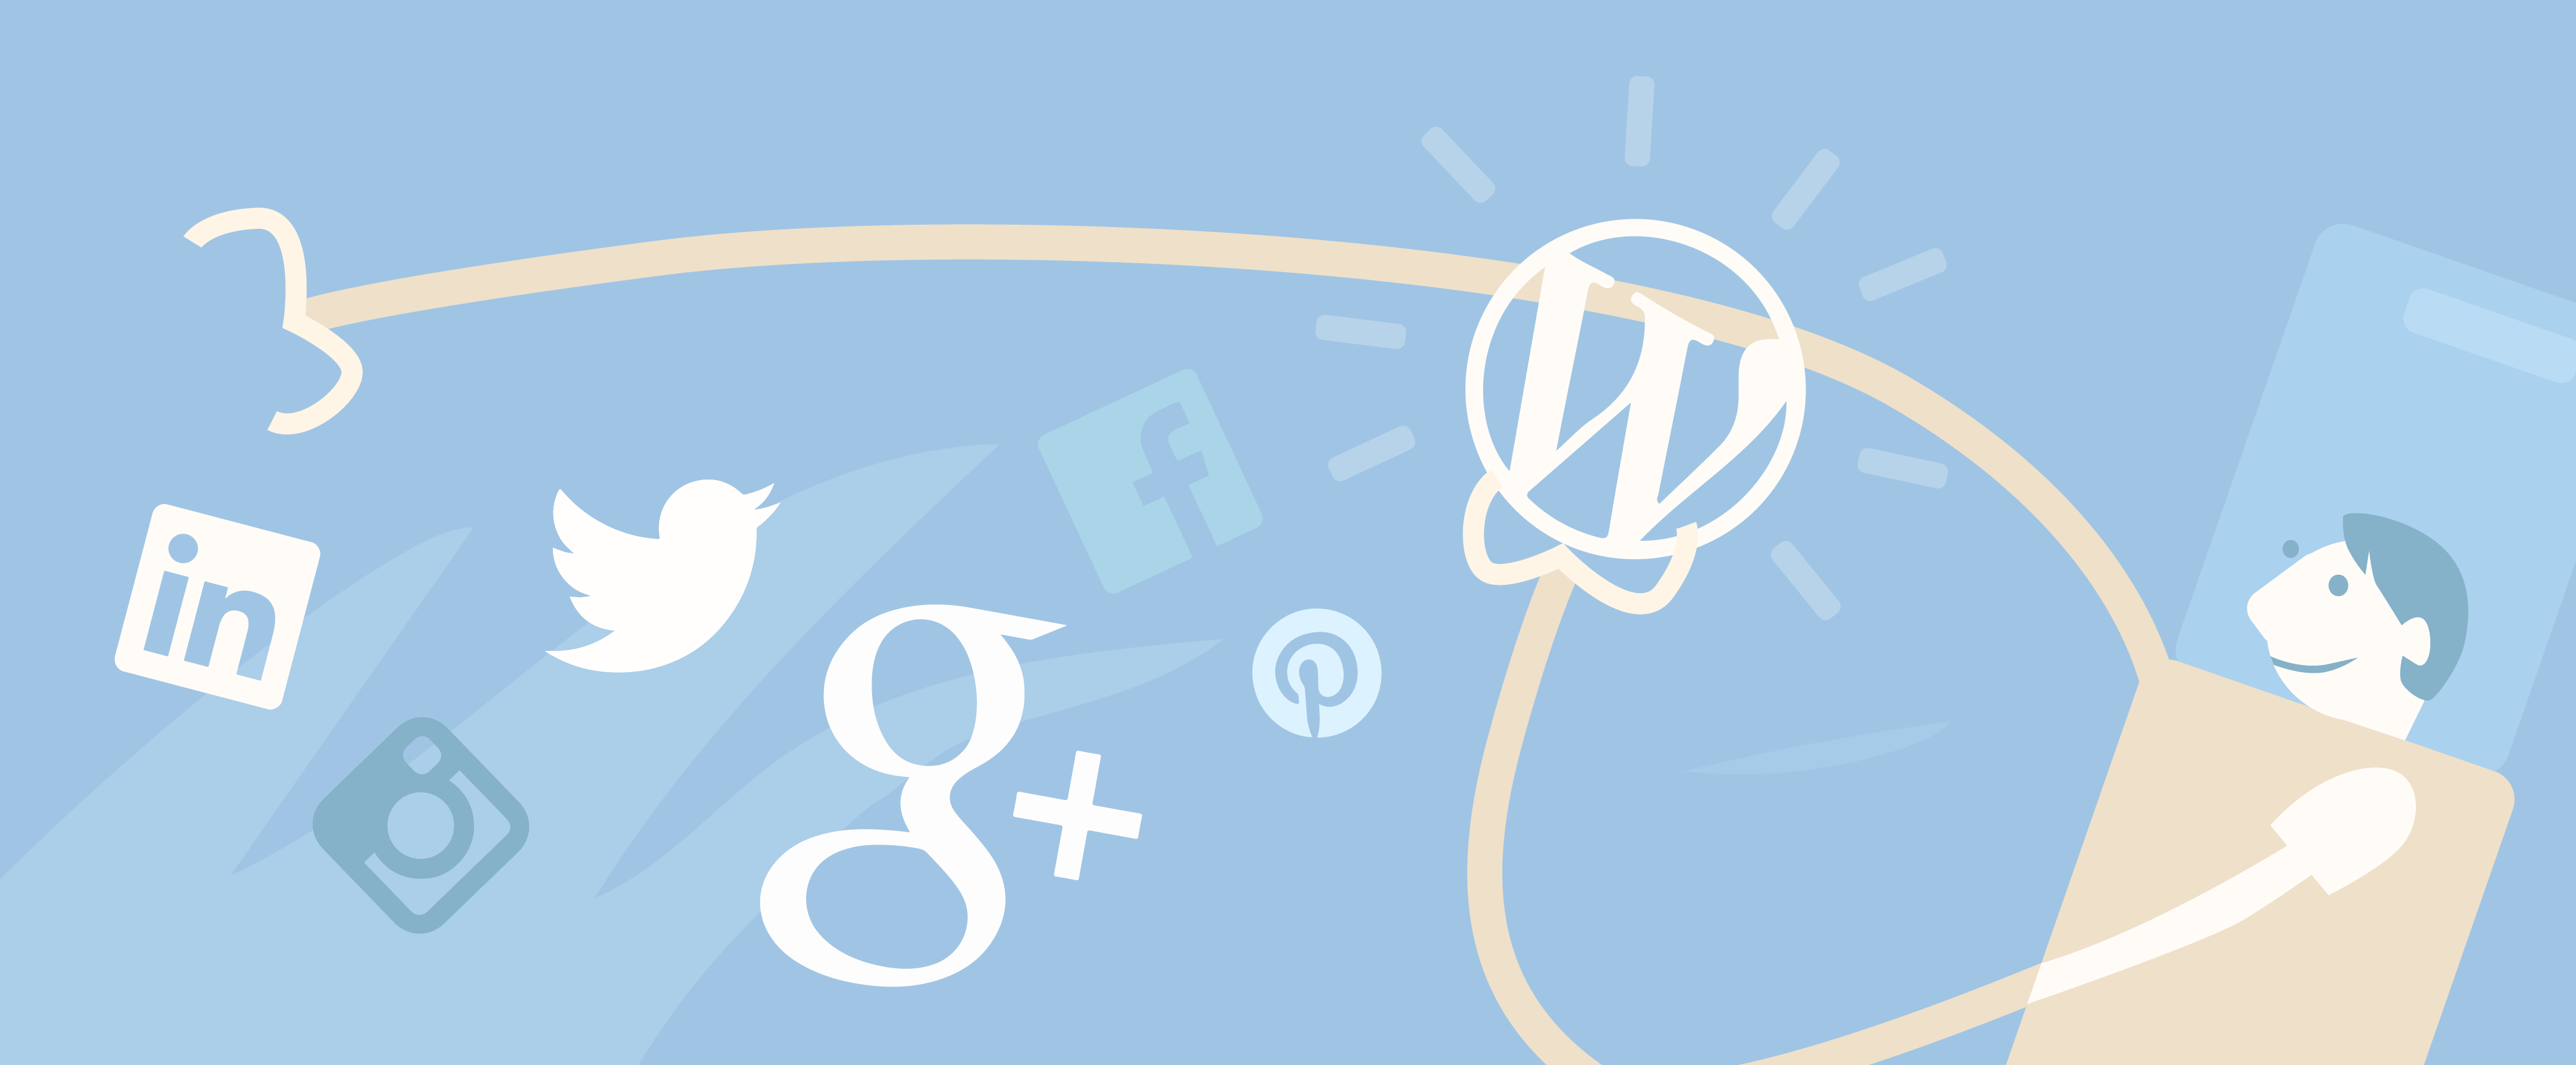 9 Effective Ways to Promote Your Blog on Social Media